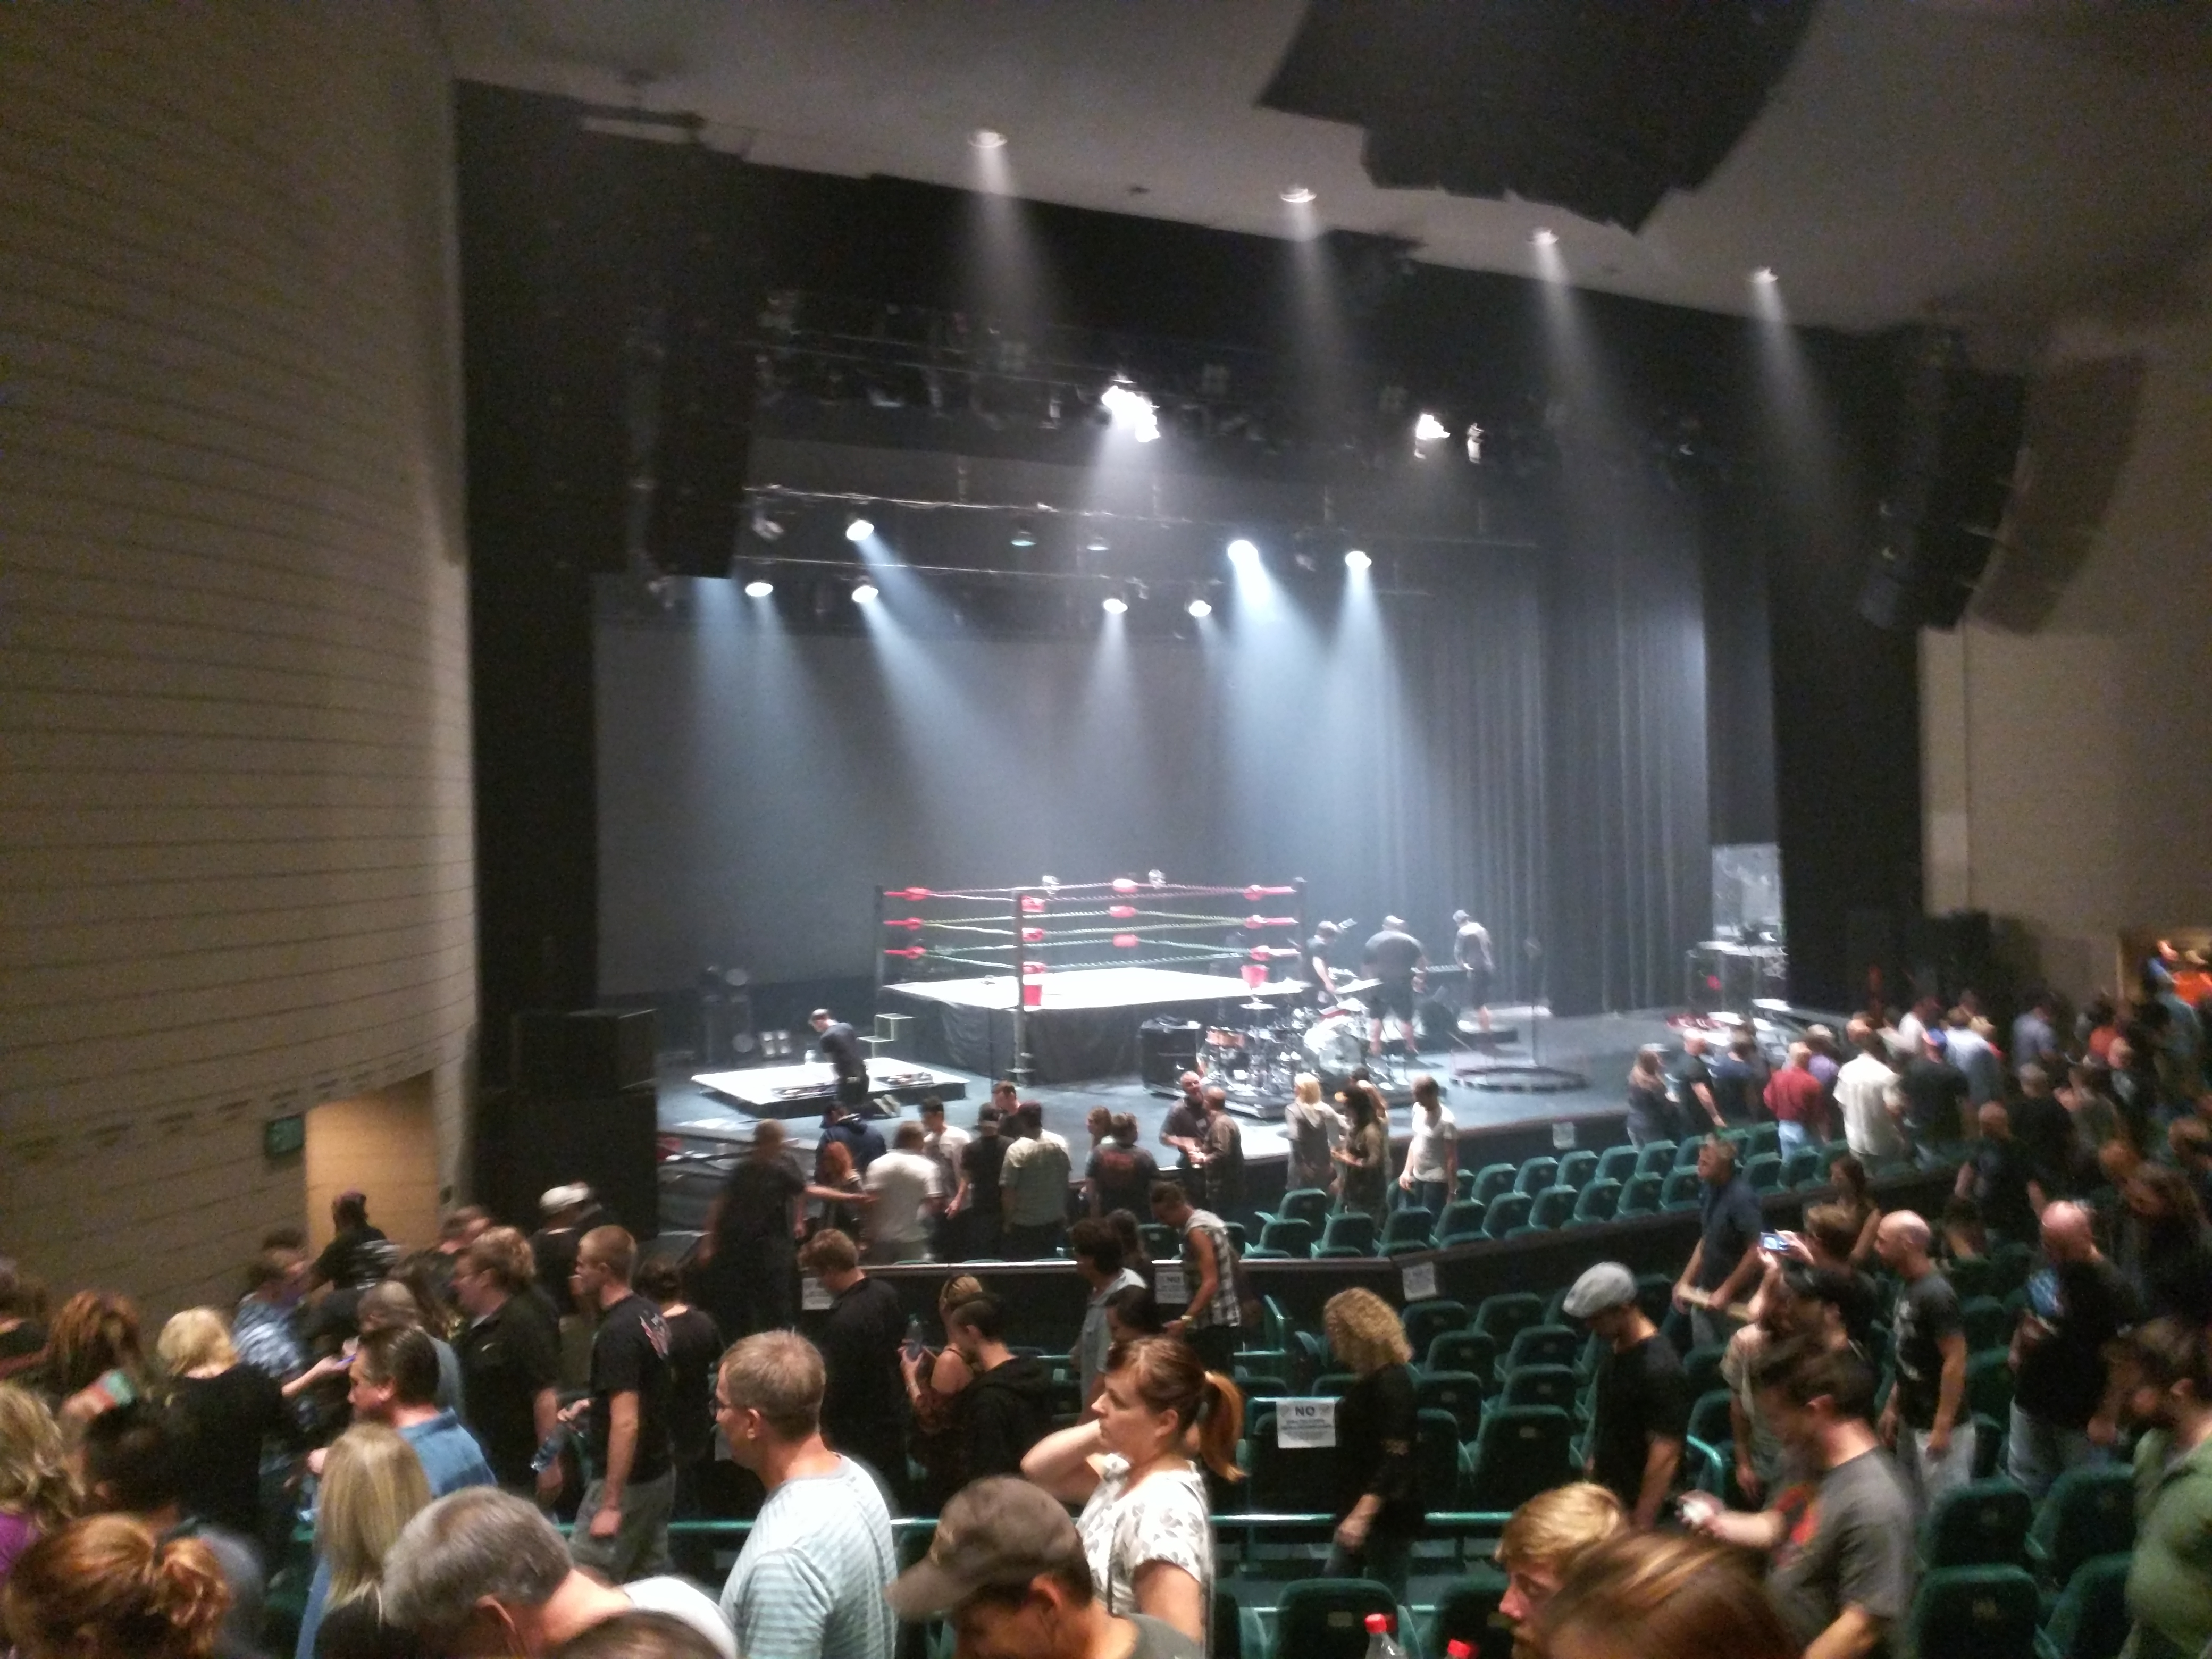 There was a Puscifer concert at Ruth Eckerd Hall in Clearwater FL We went and it was a crazy entertaining show For those keeping track that makes twice